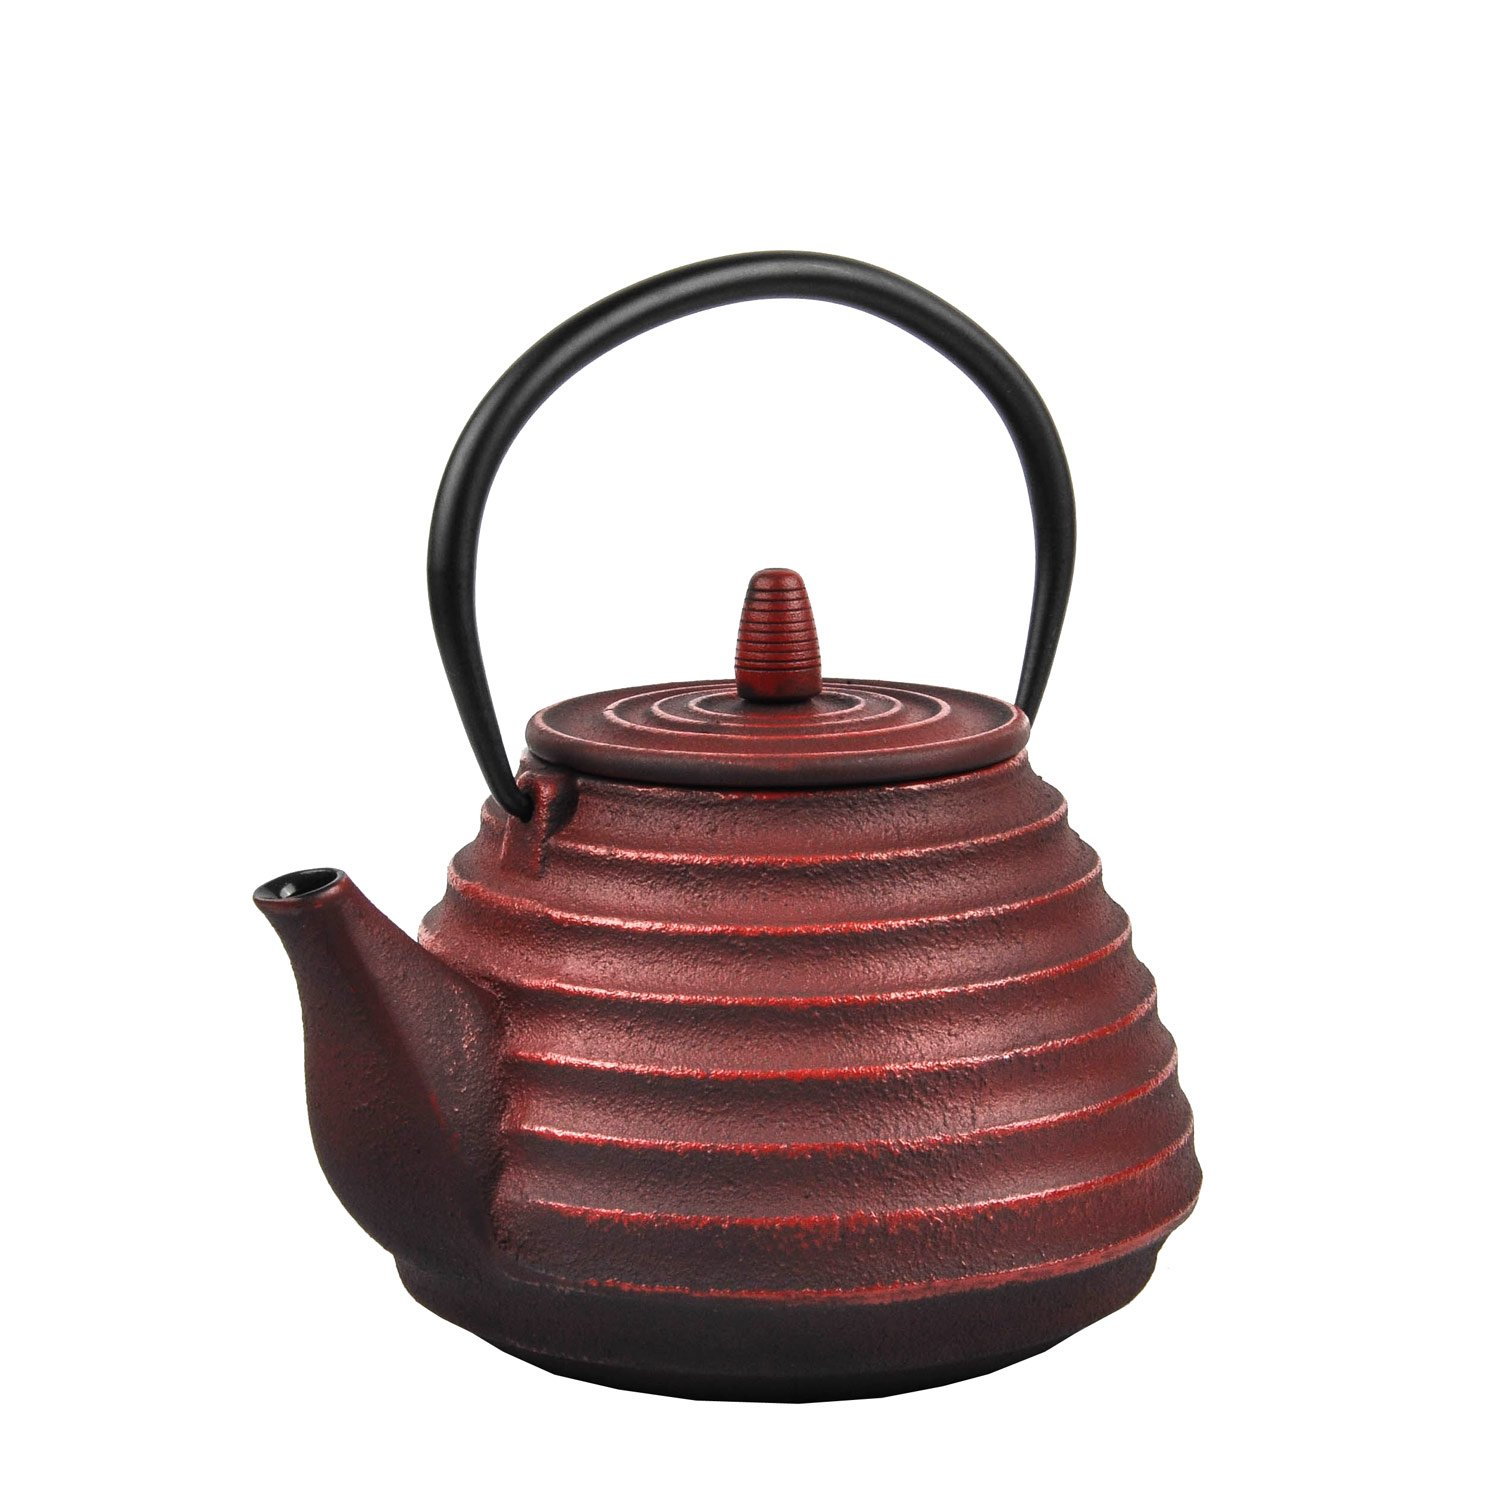 Spigo Sencha Cast Iron Enamel With Stainless Steel Infuser Teapot Red 33 Ounces